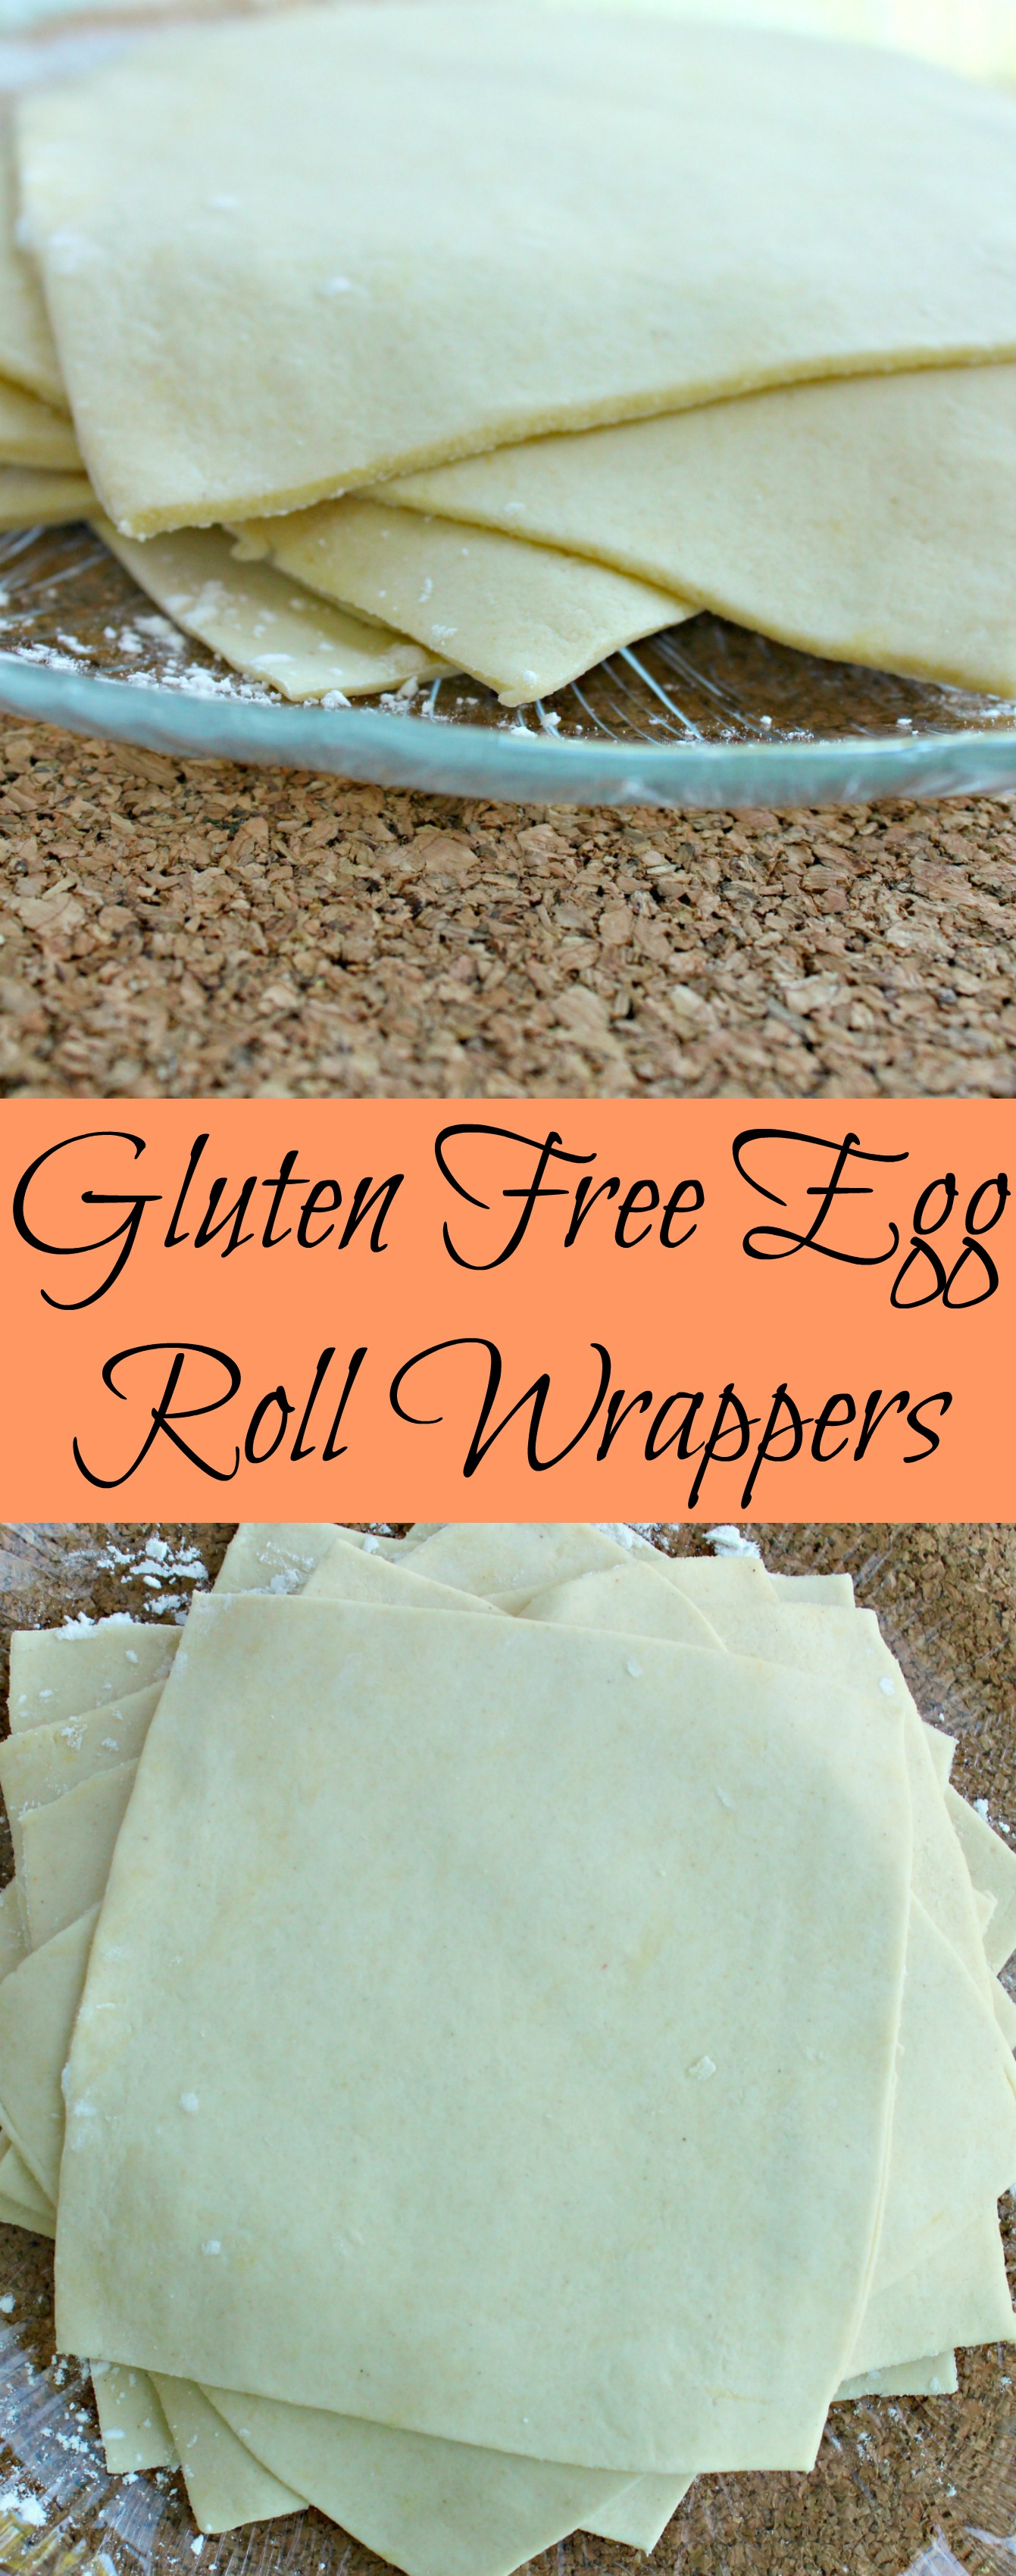 Gluten Free Egg Roll Wrappers Pin